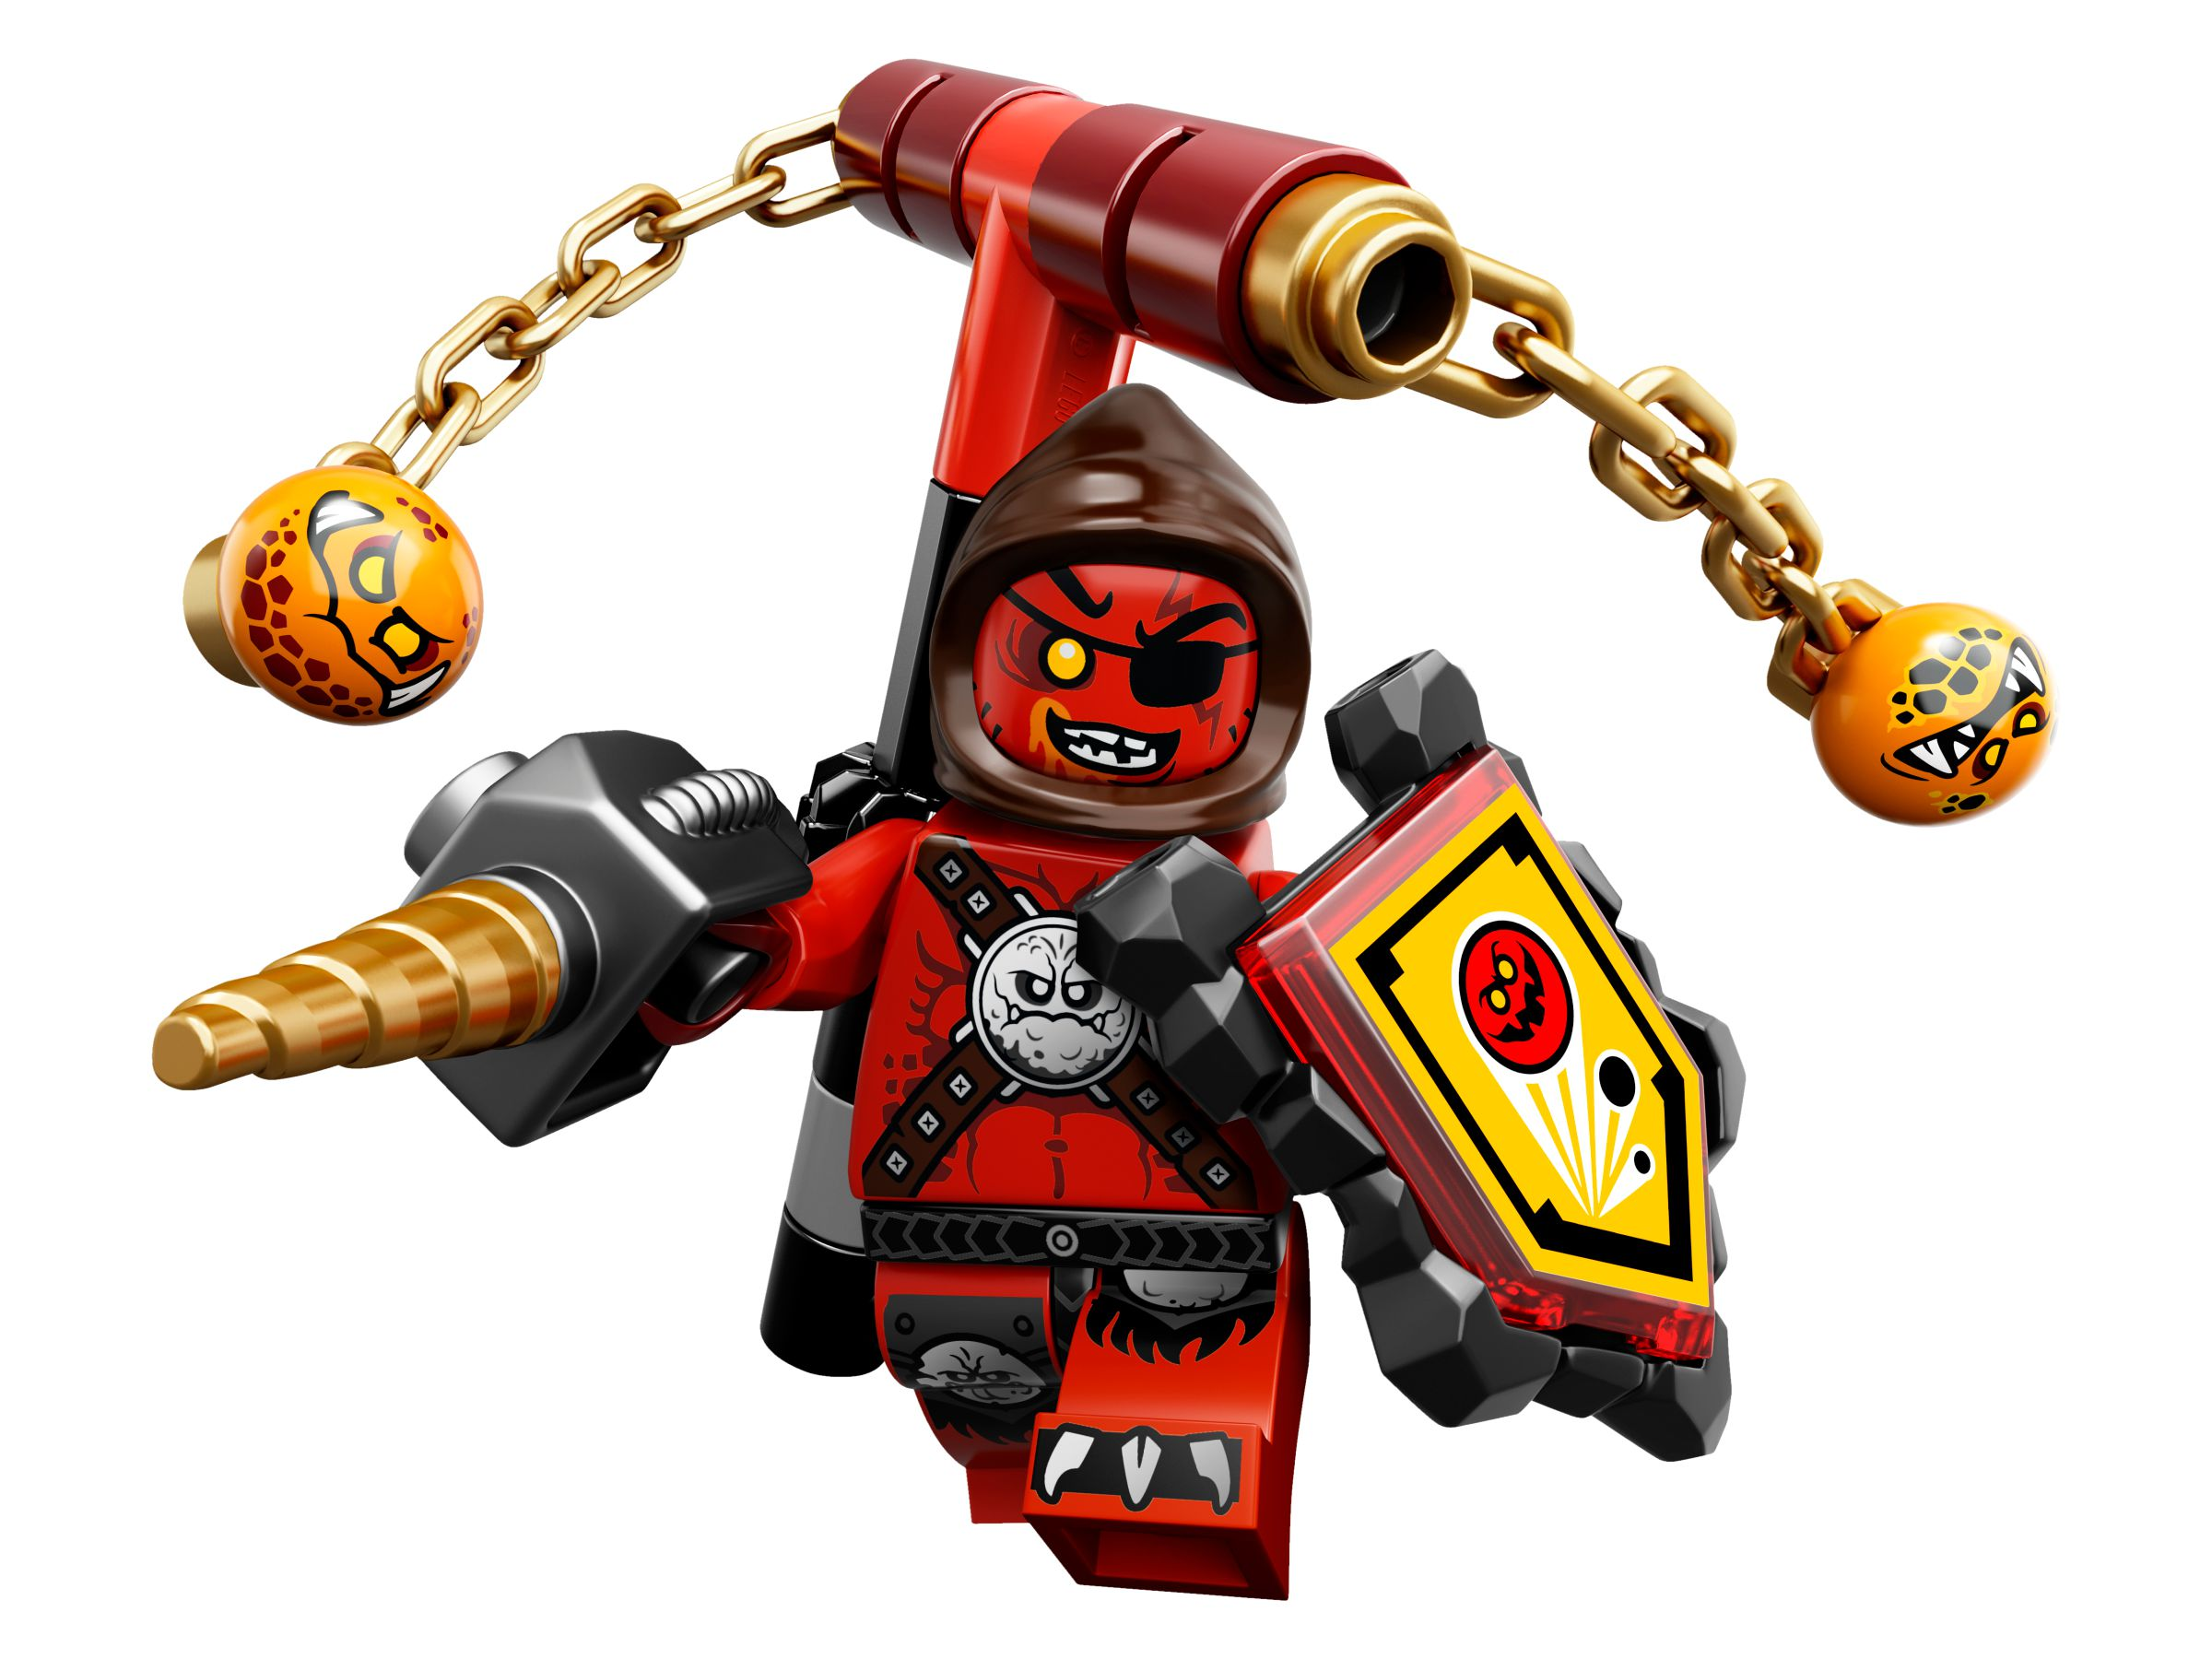 LEGO Nexo Knights 70334 Ultimativer Monster-Meister LEGO_70334_alt3.jpg